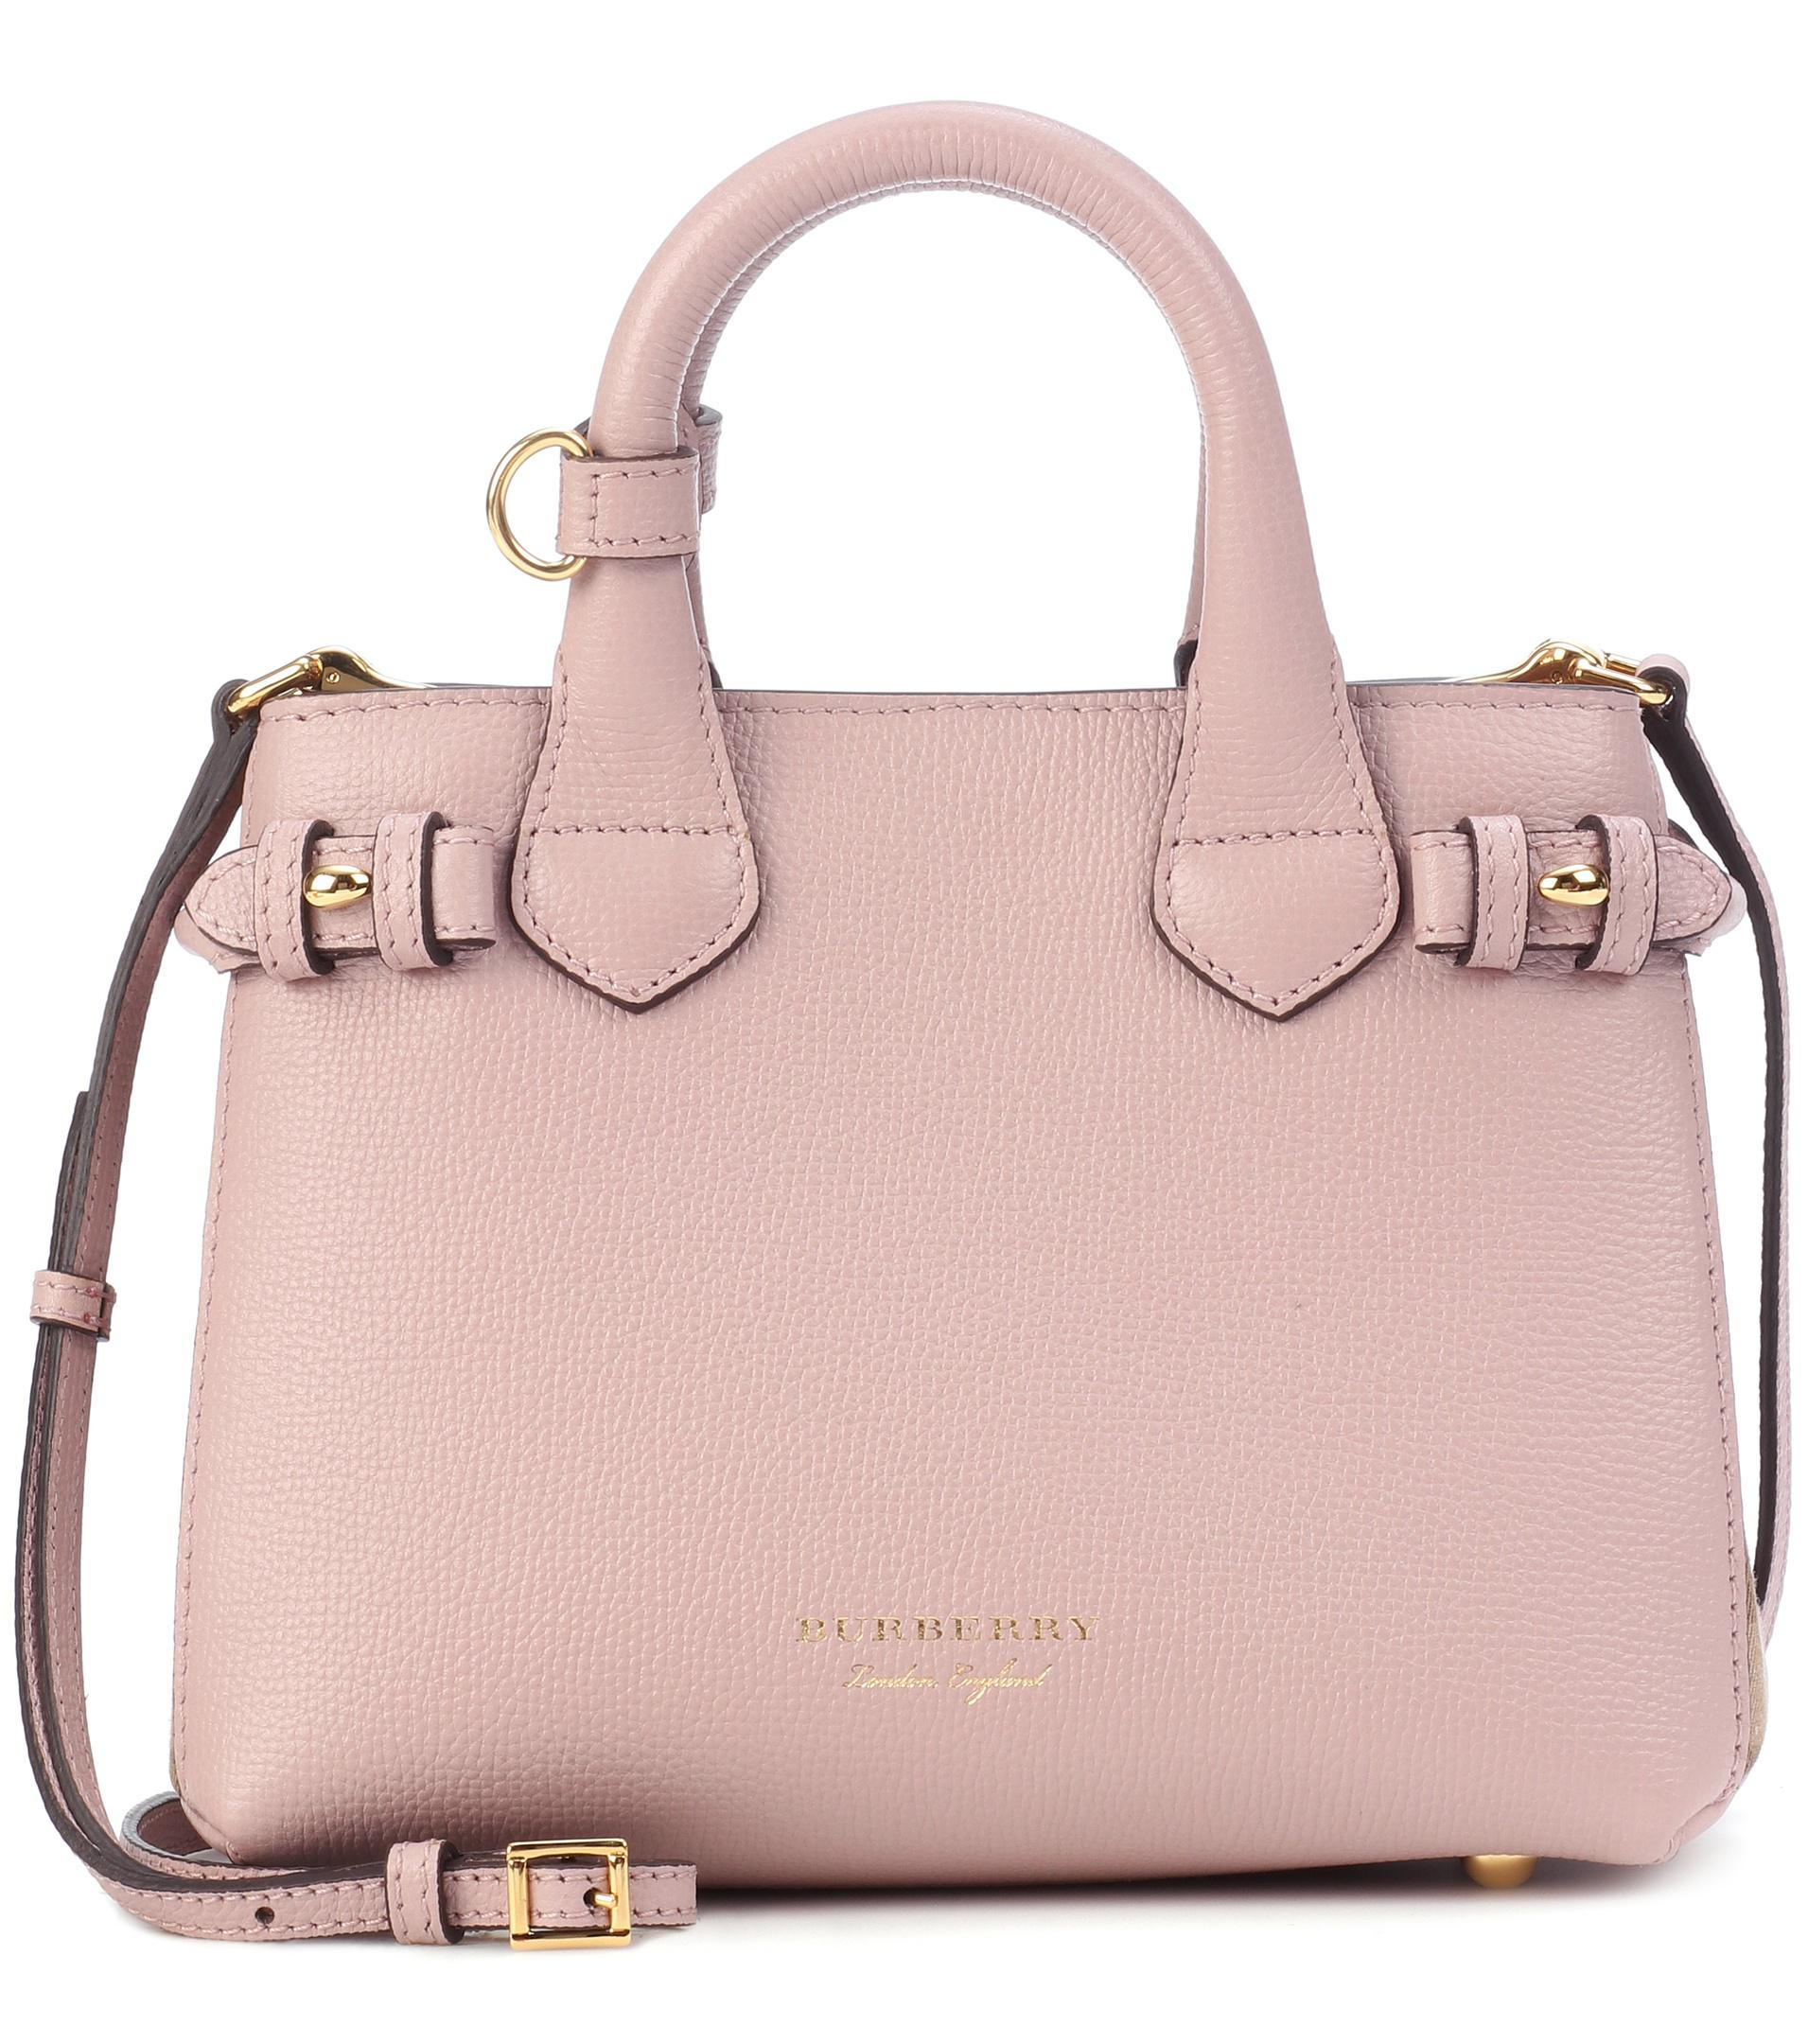 Lyst - Burberry The Baby Banner Leather Shoulder Bag in Pink 93bbe6fef5318